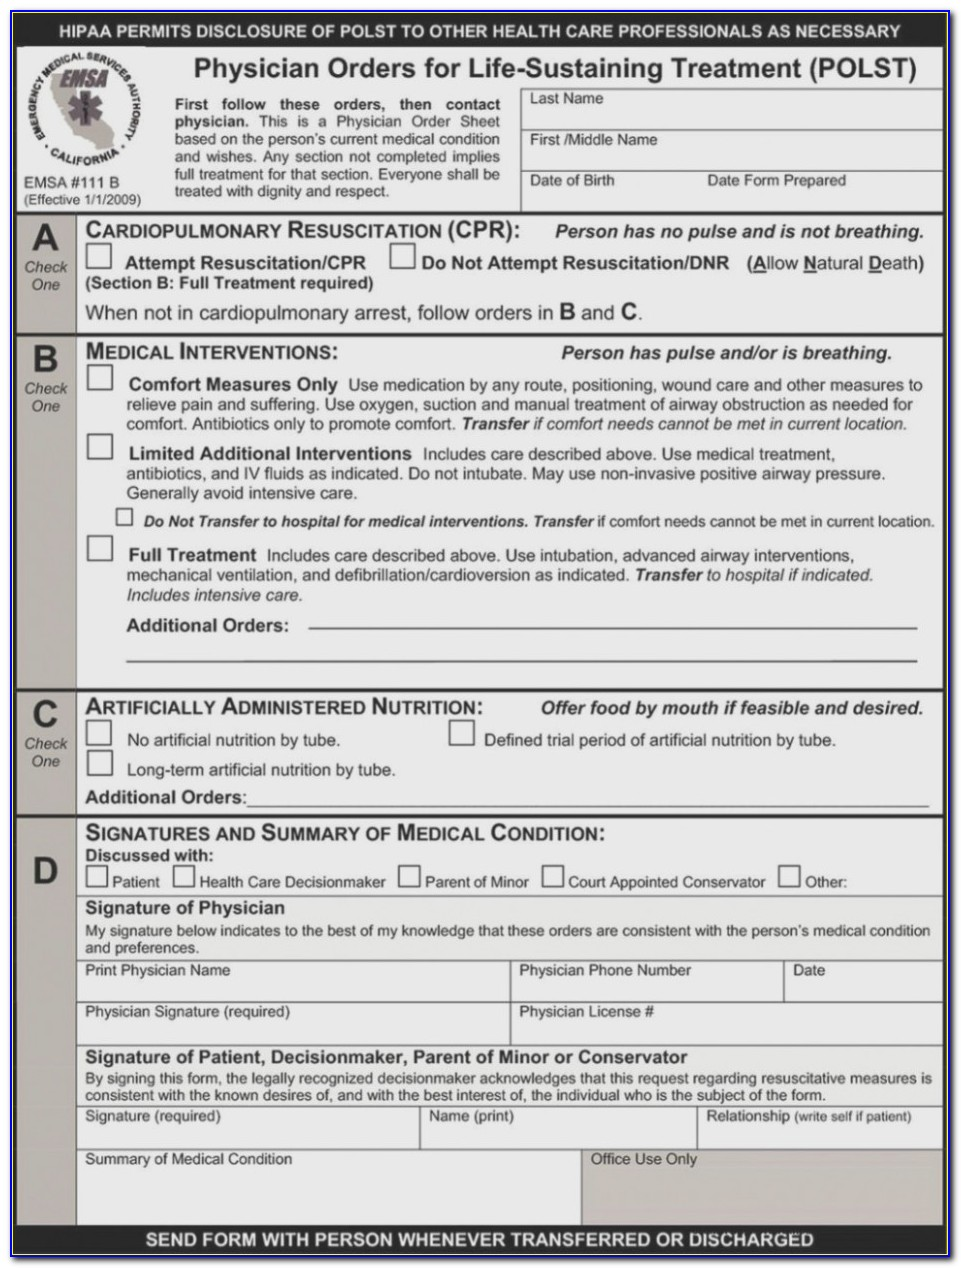 Advance Health Care Directive Form California 2019